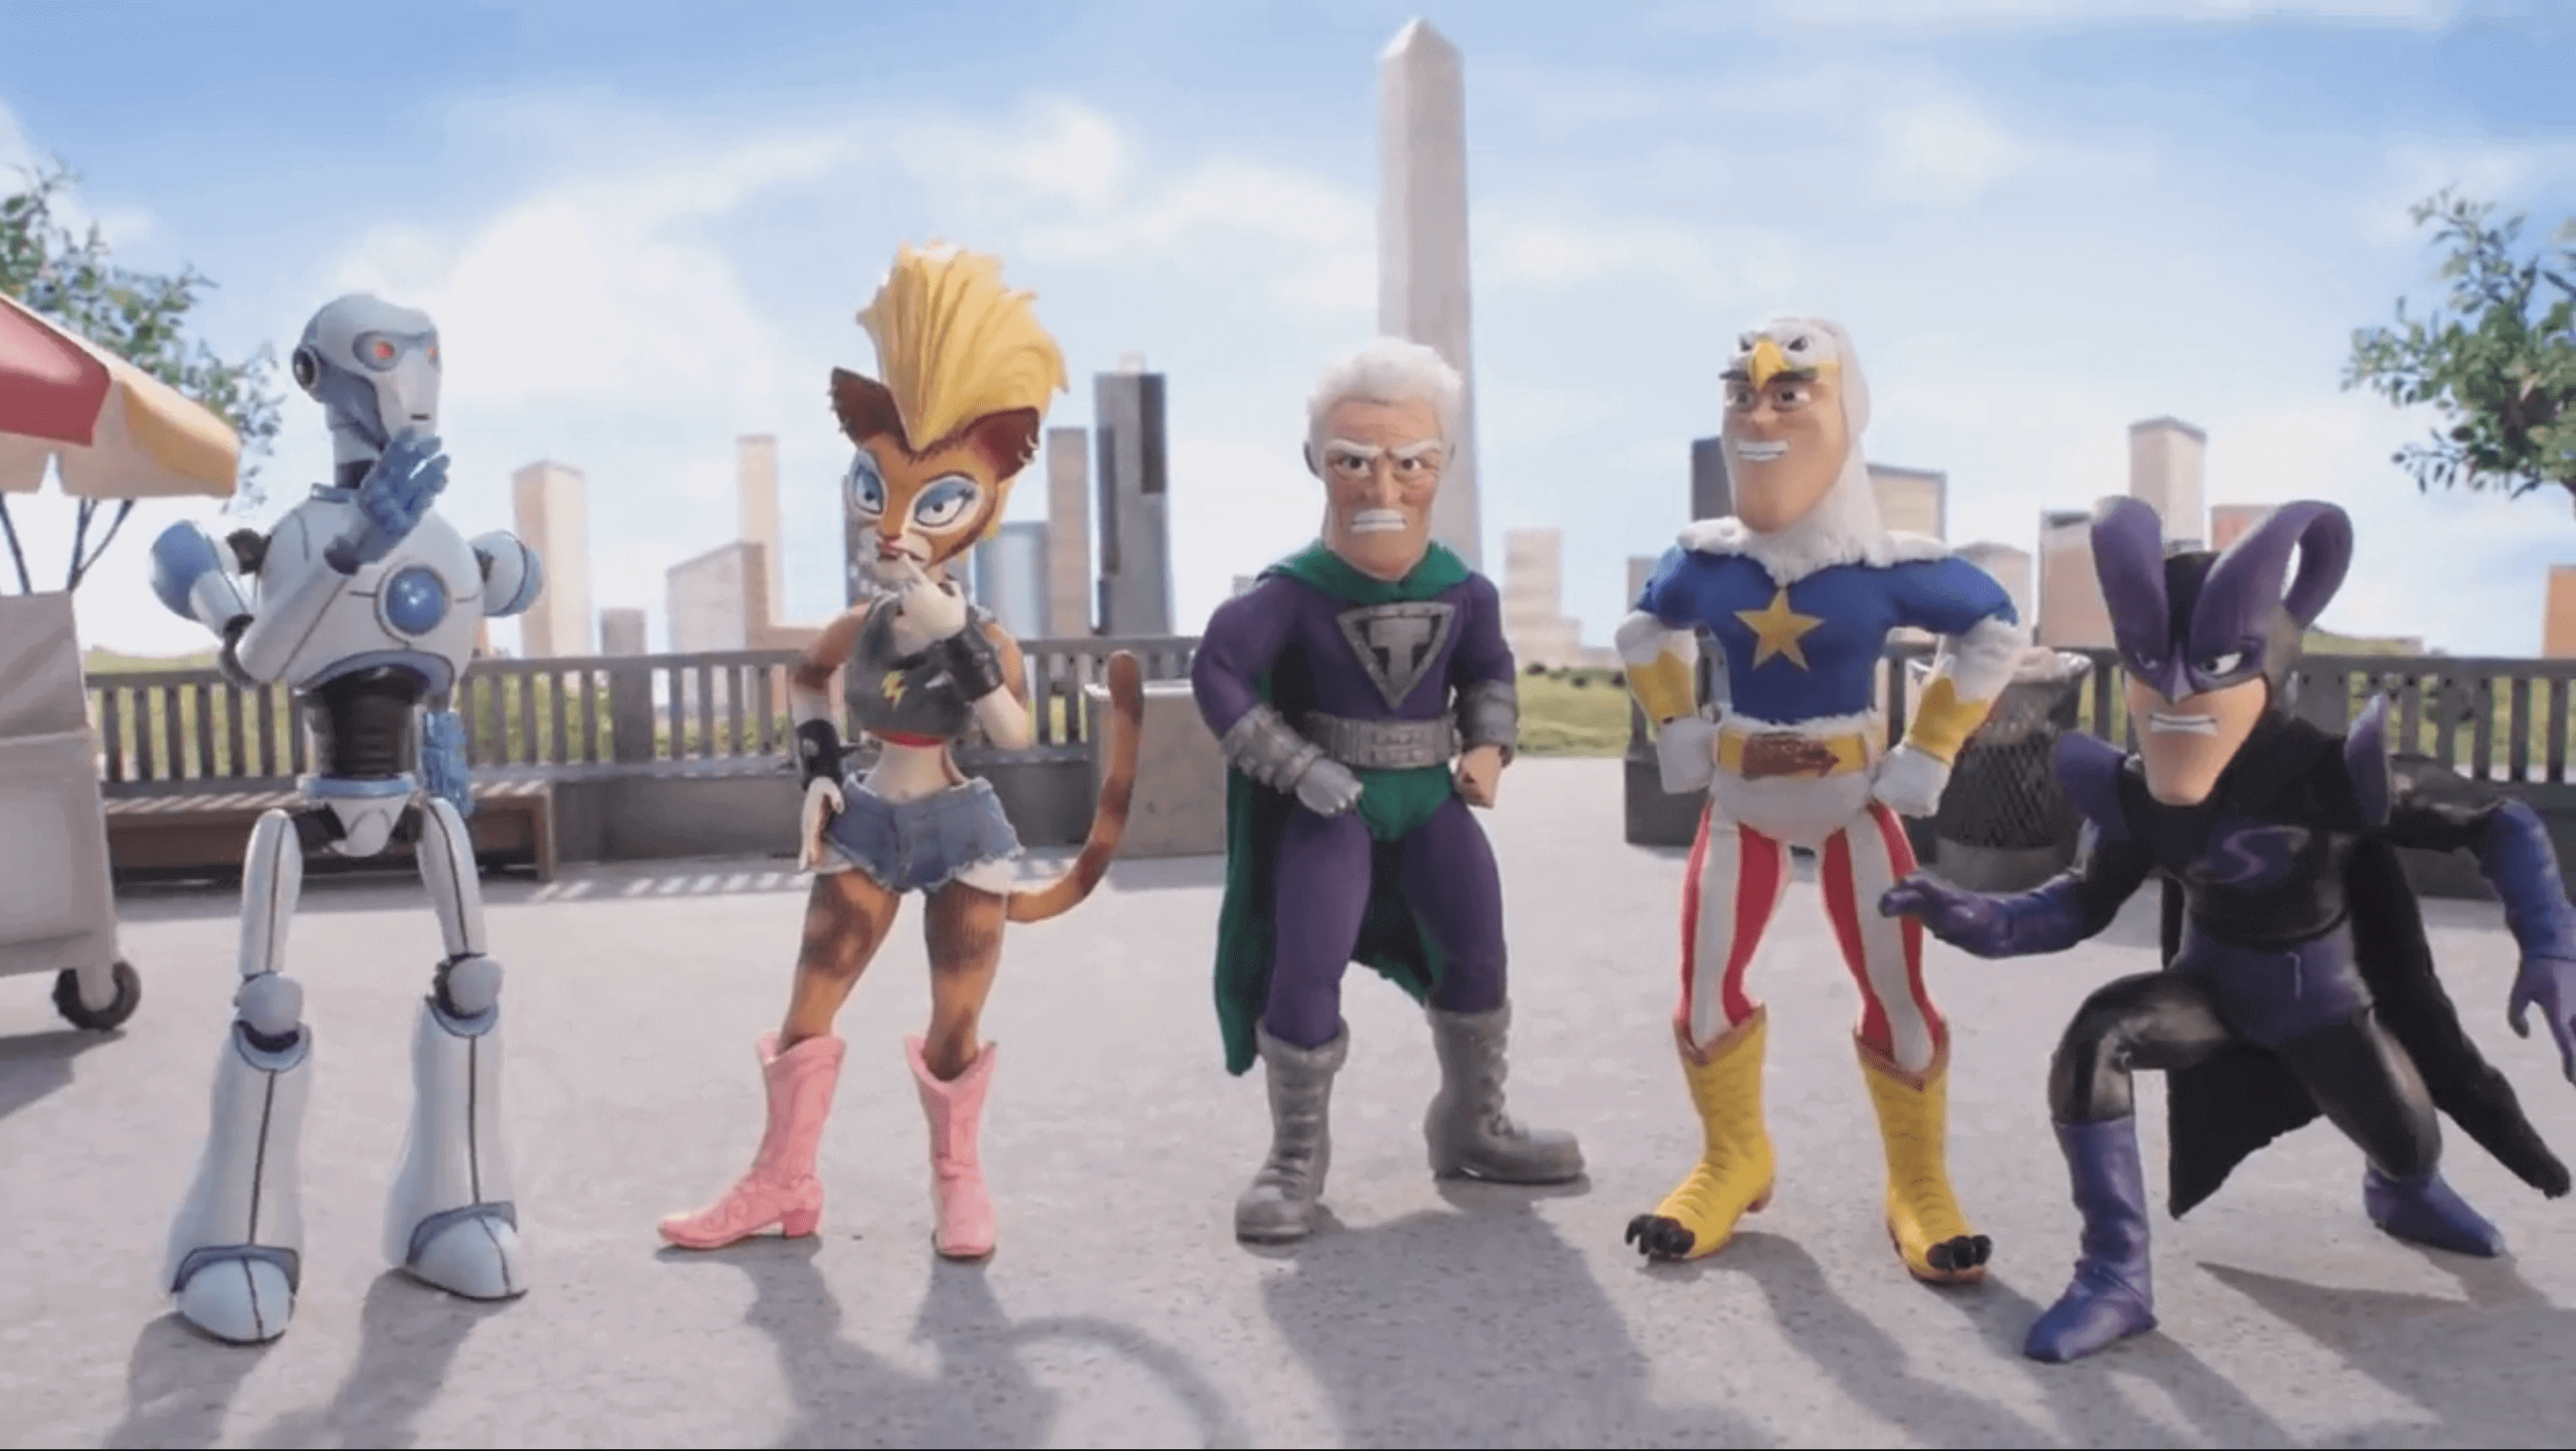 Animated Comedy SuperMansion is Made With 3D Printing | All3DP